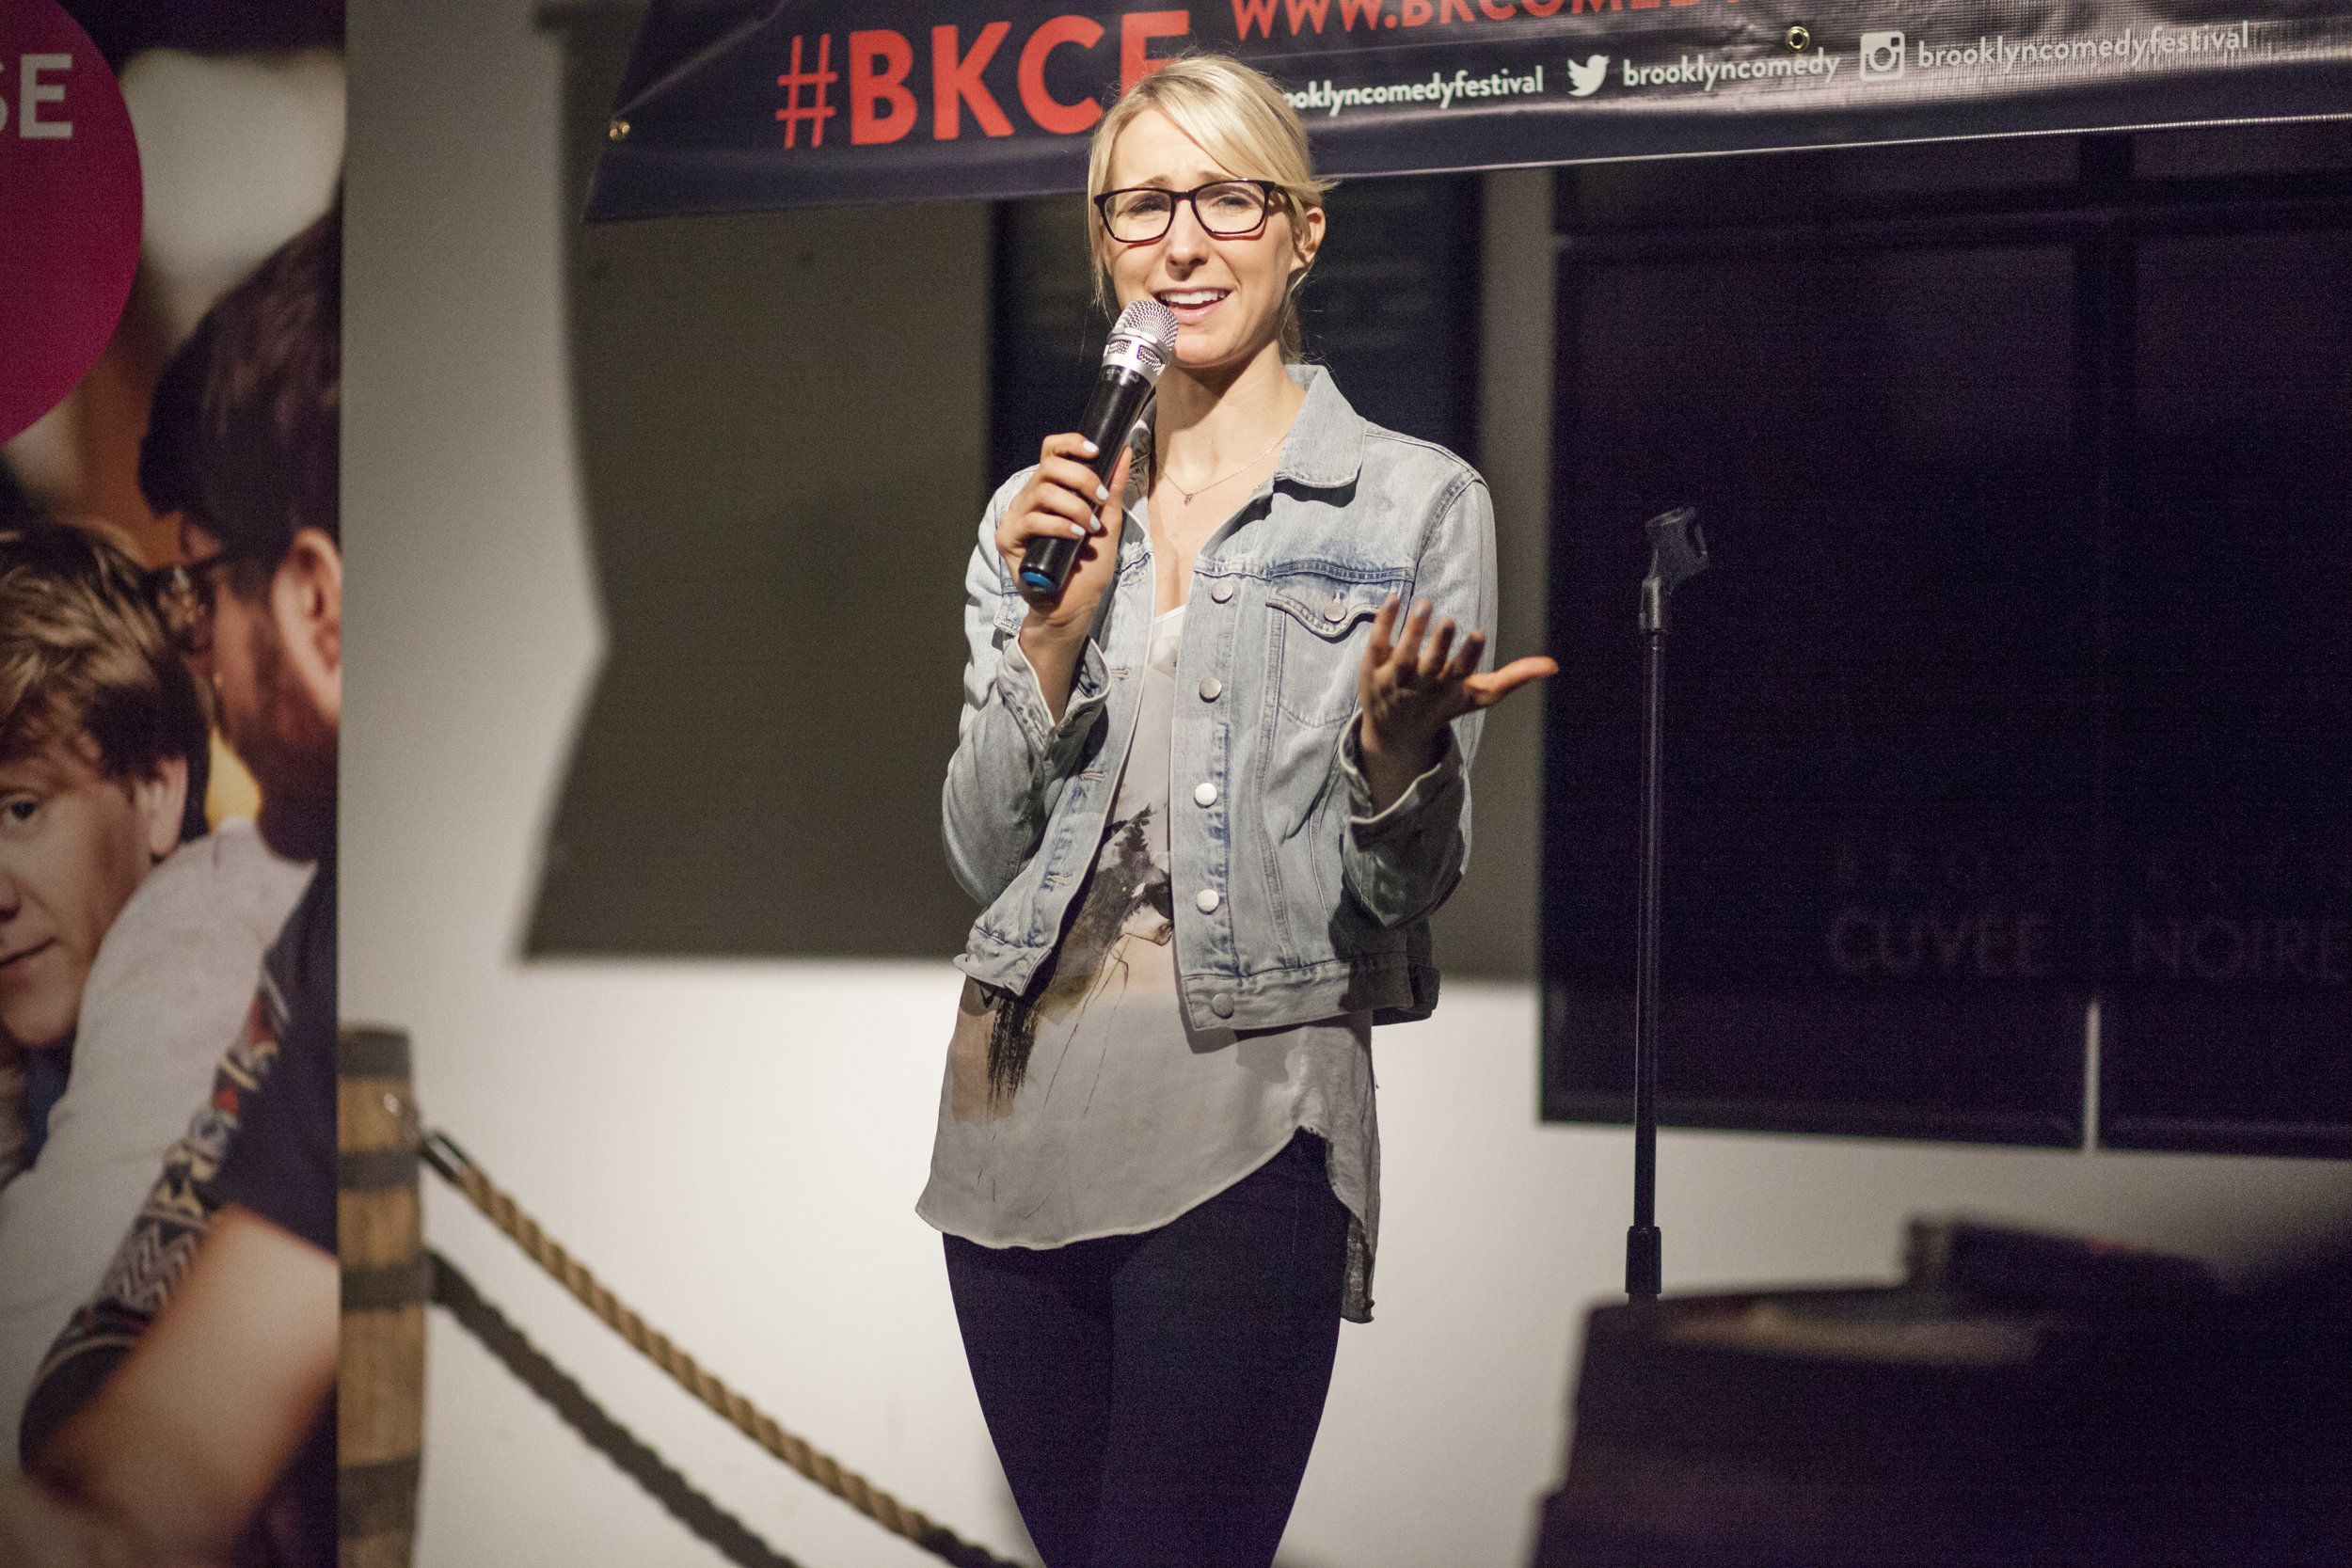 Nikki Glaser @ Brooklyn Brewery 2014